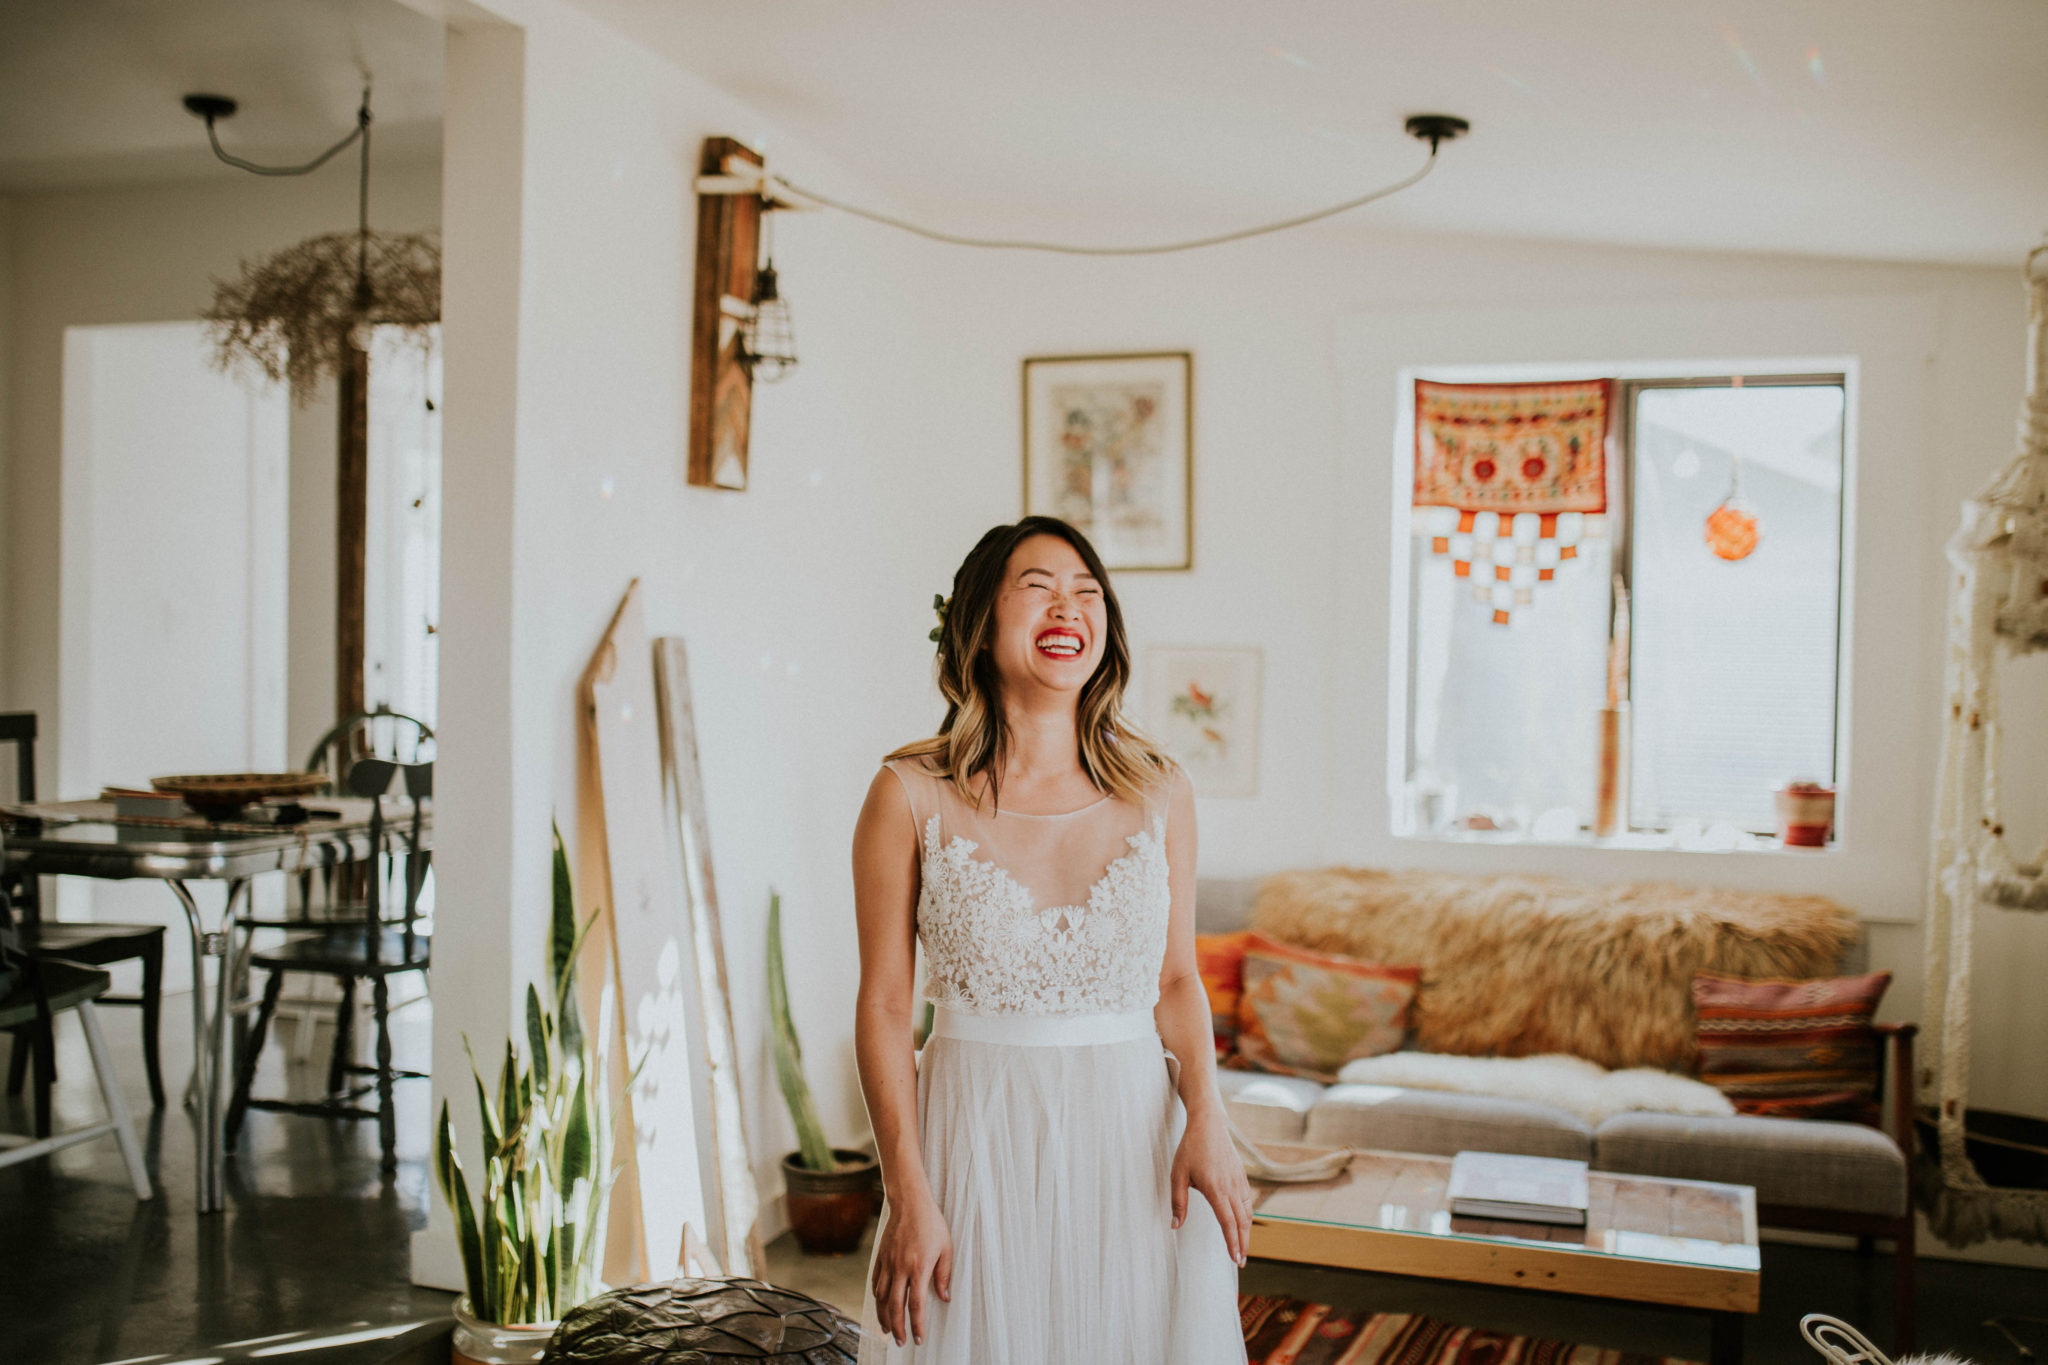 Mandy & Joey Joshua Tree Elopement California Wedding Photographer-25